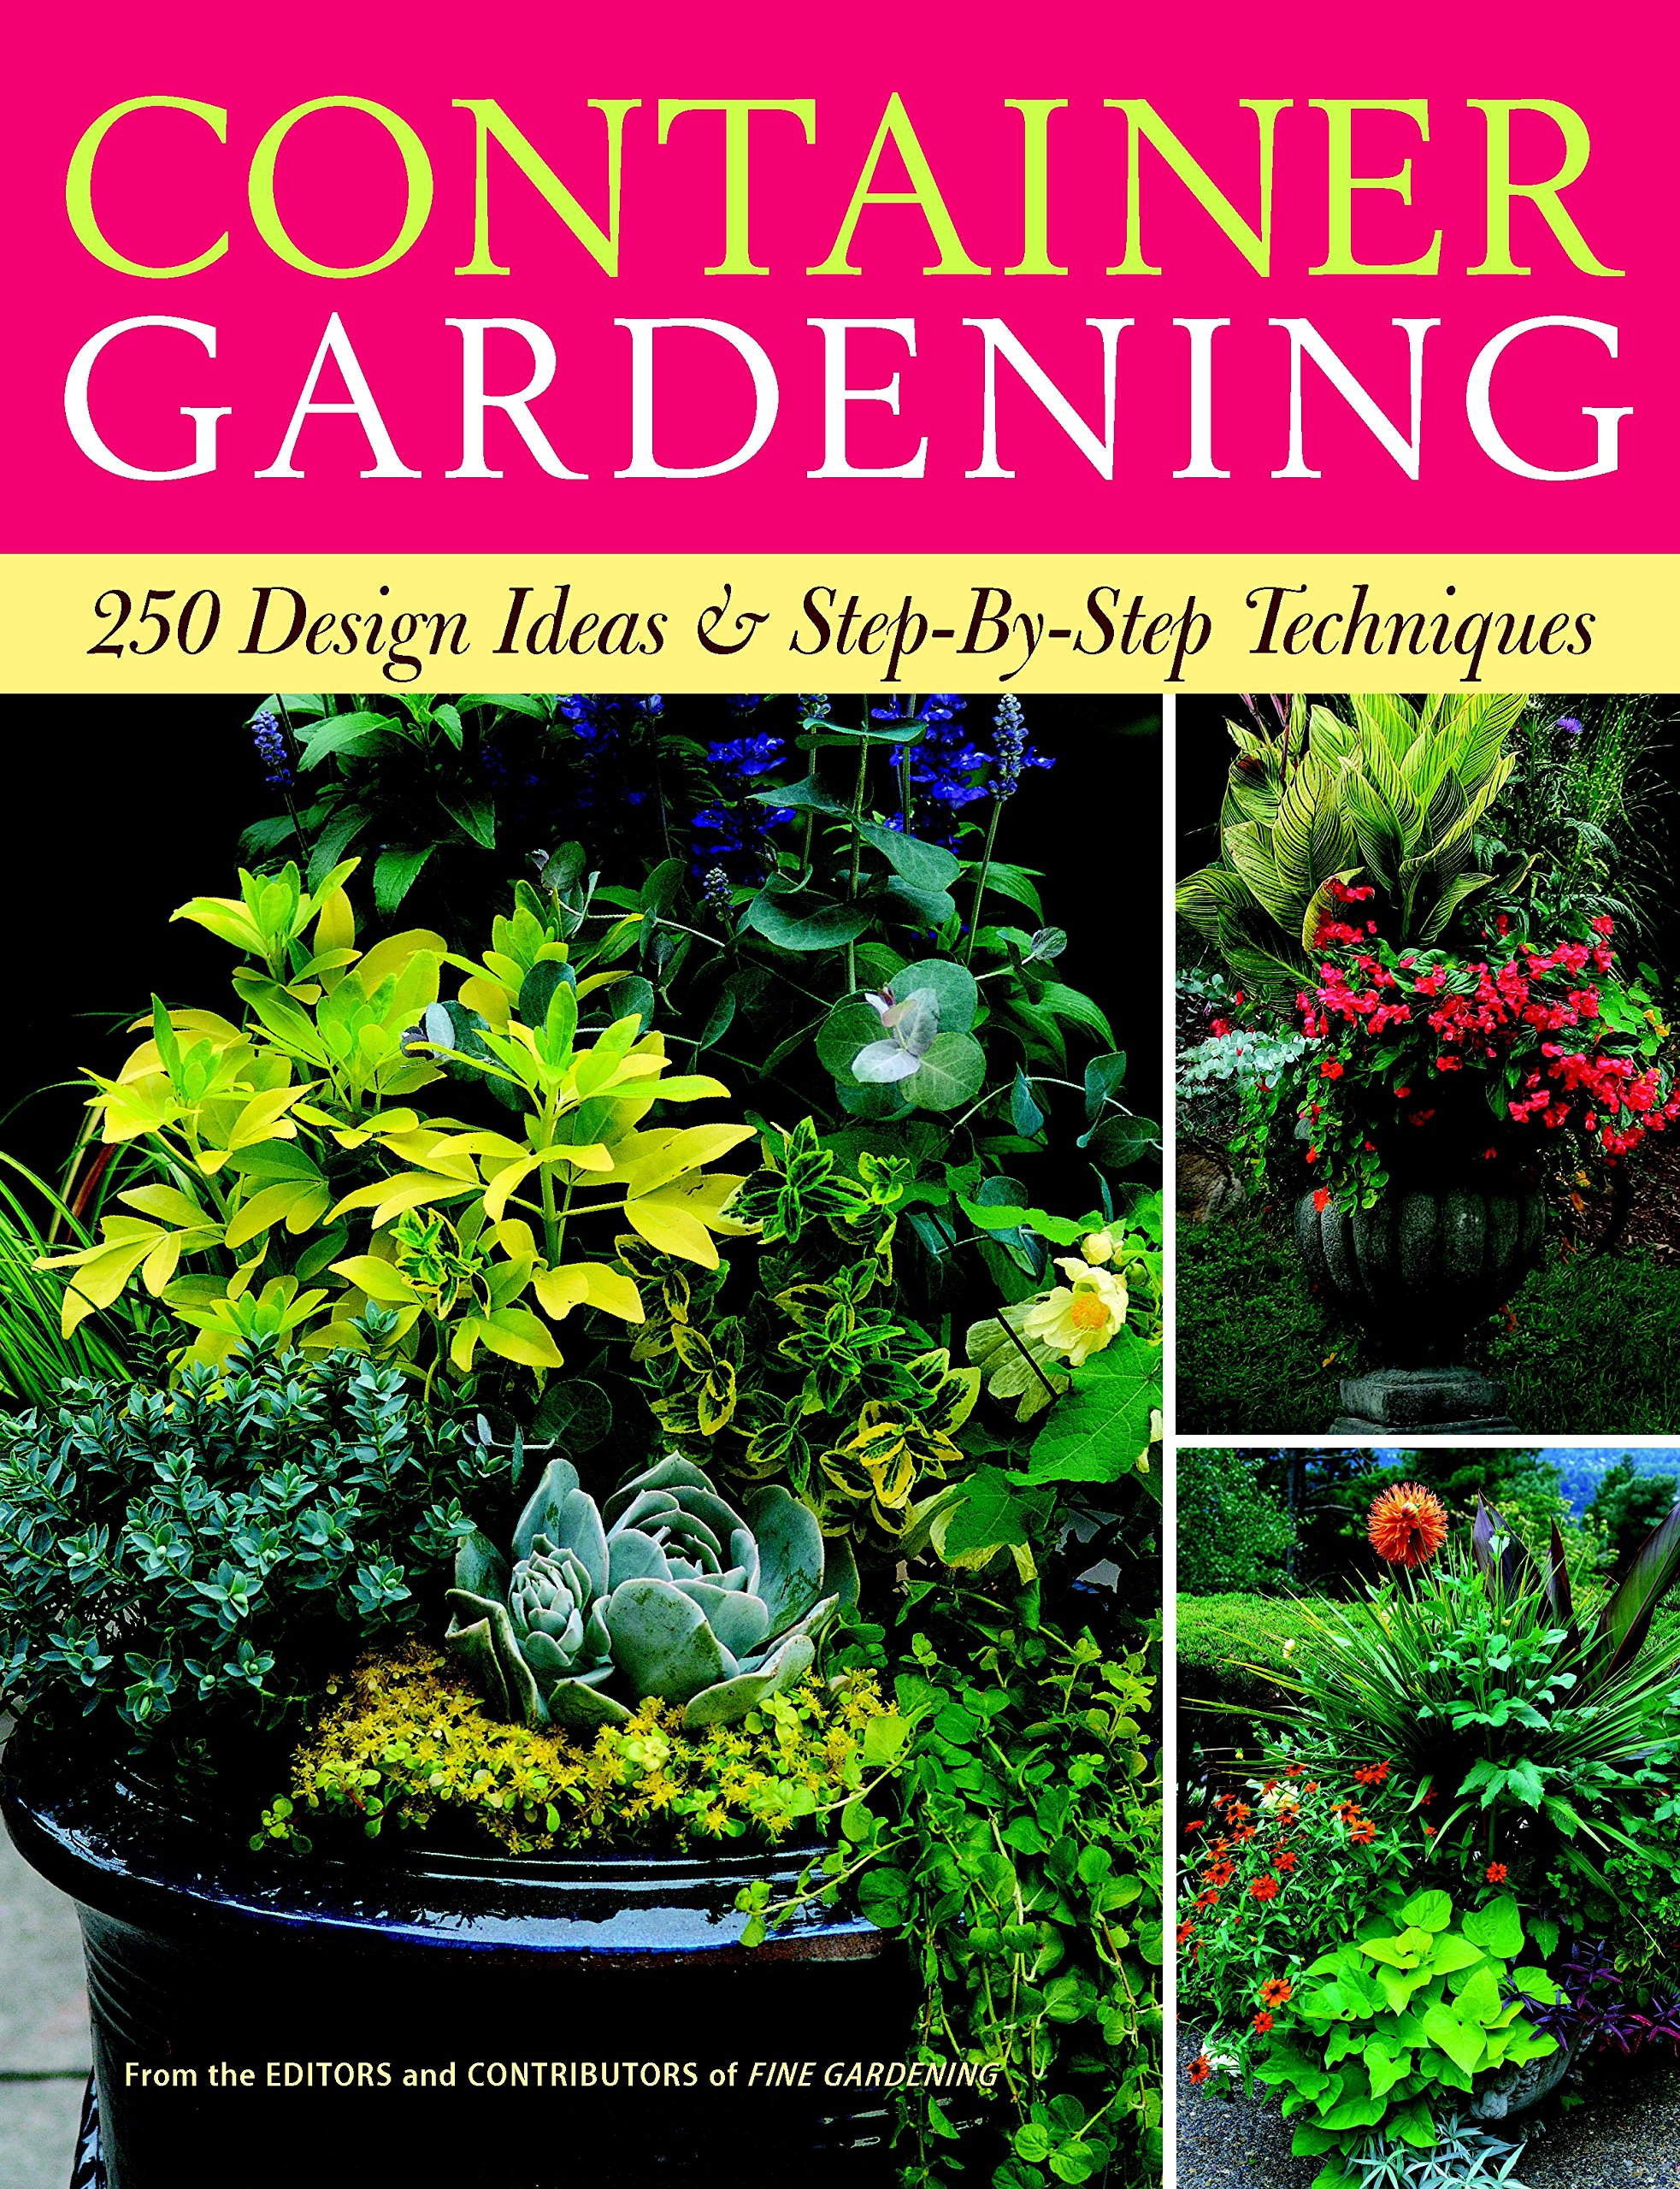 container gardening 250 design ideas step by step techniques editors of fine gardening 9781600850806 amazoncom books